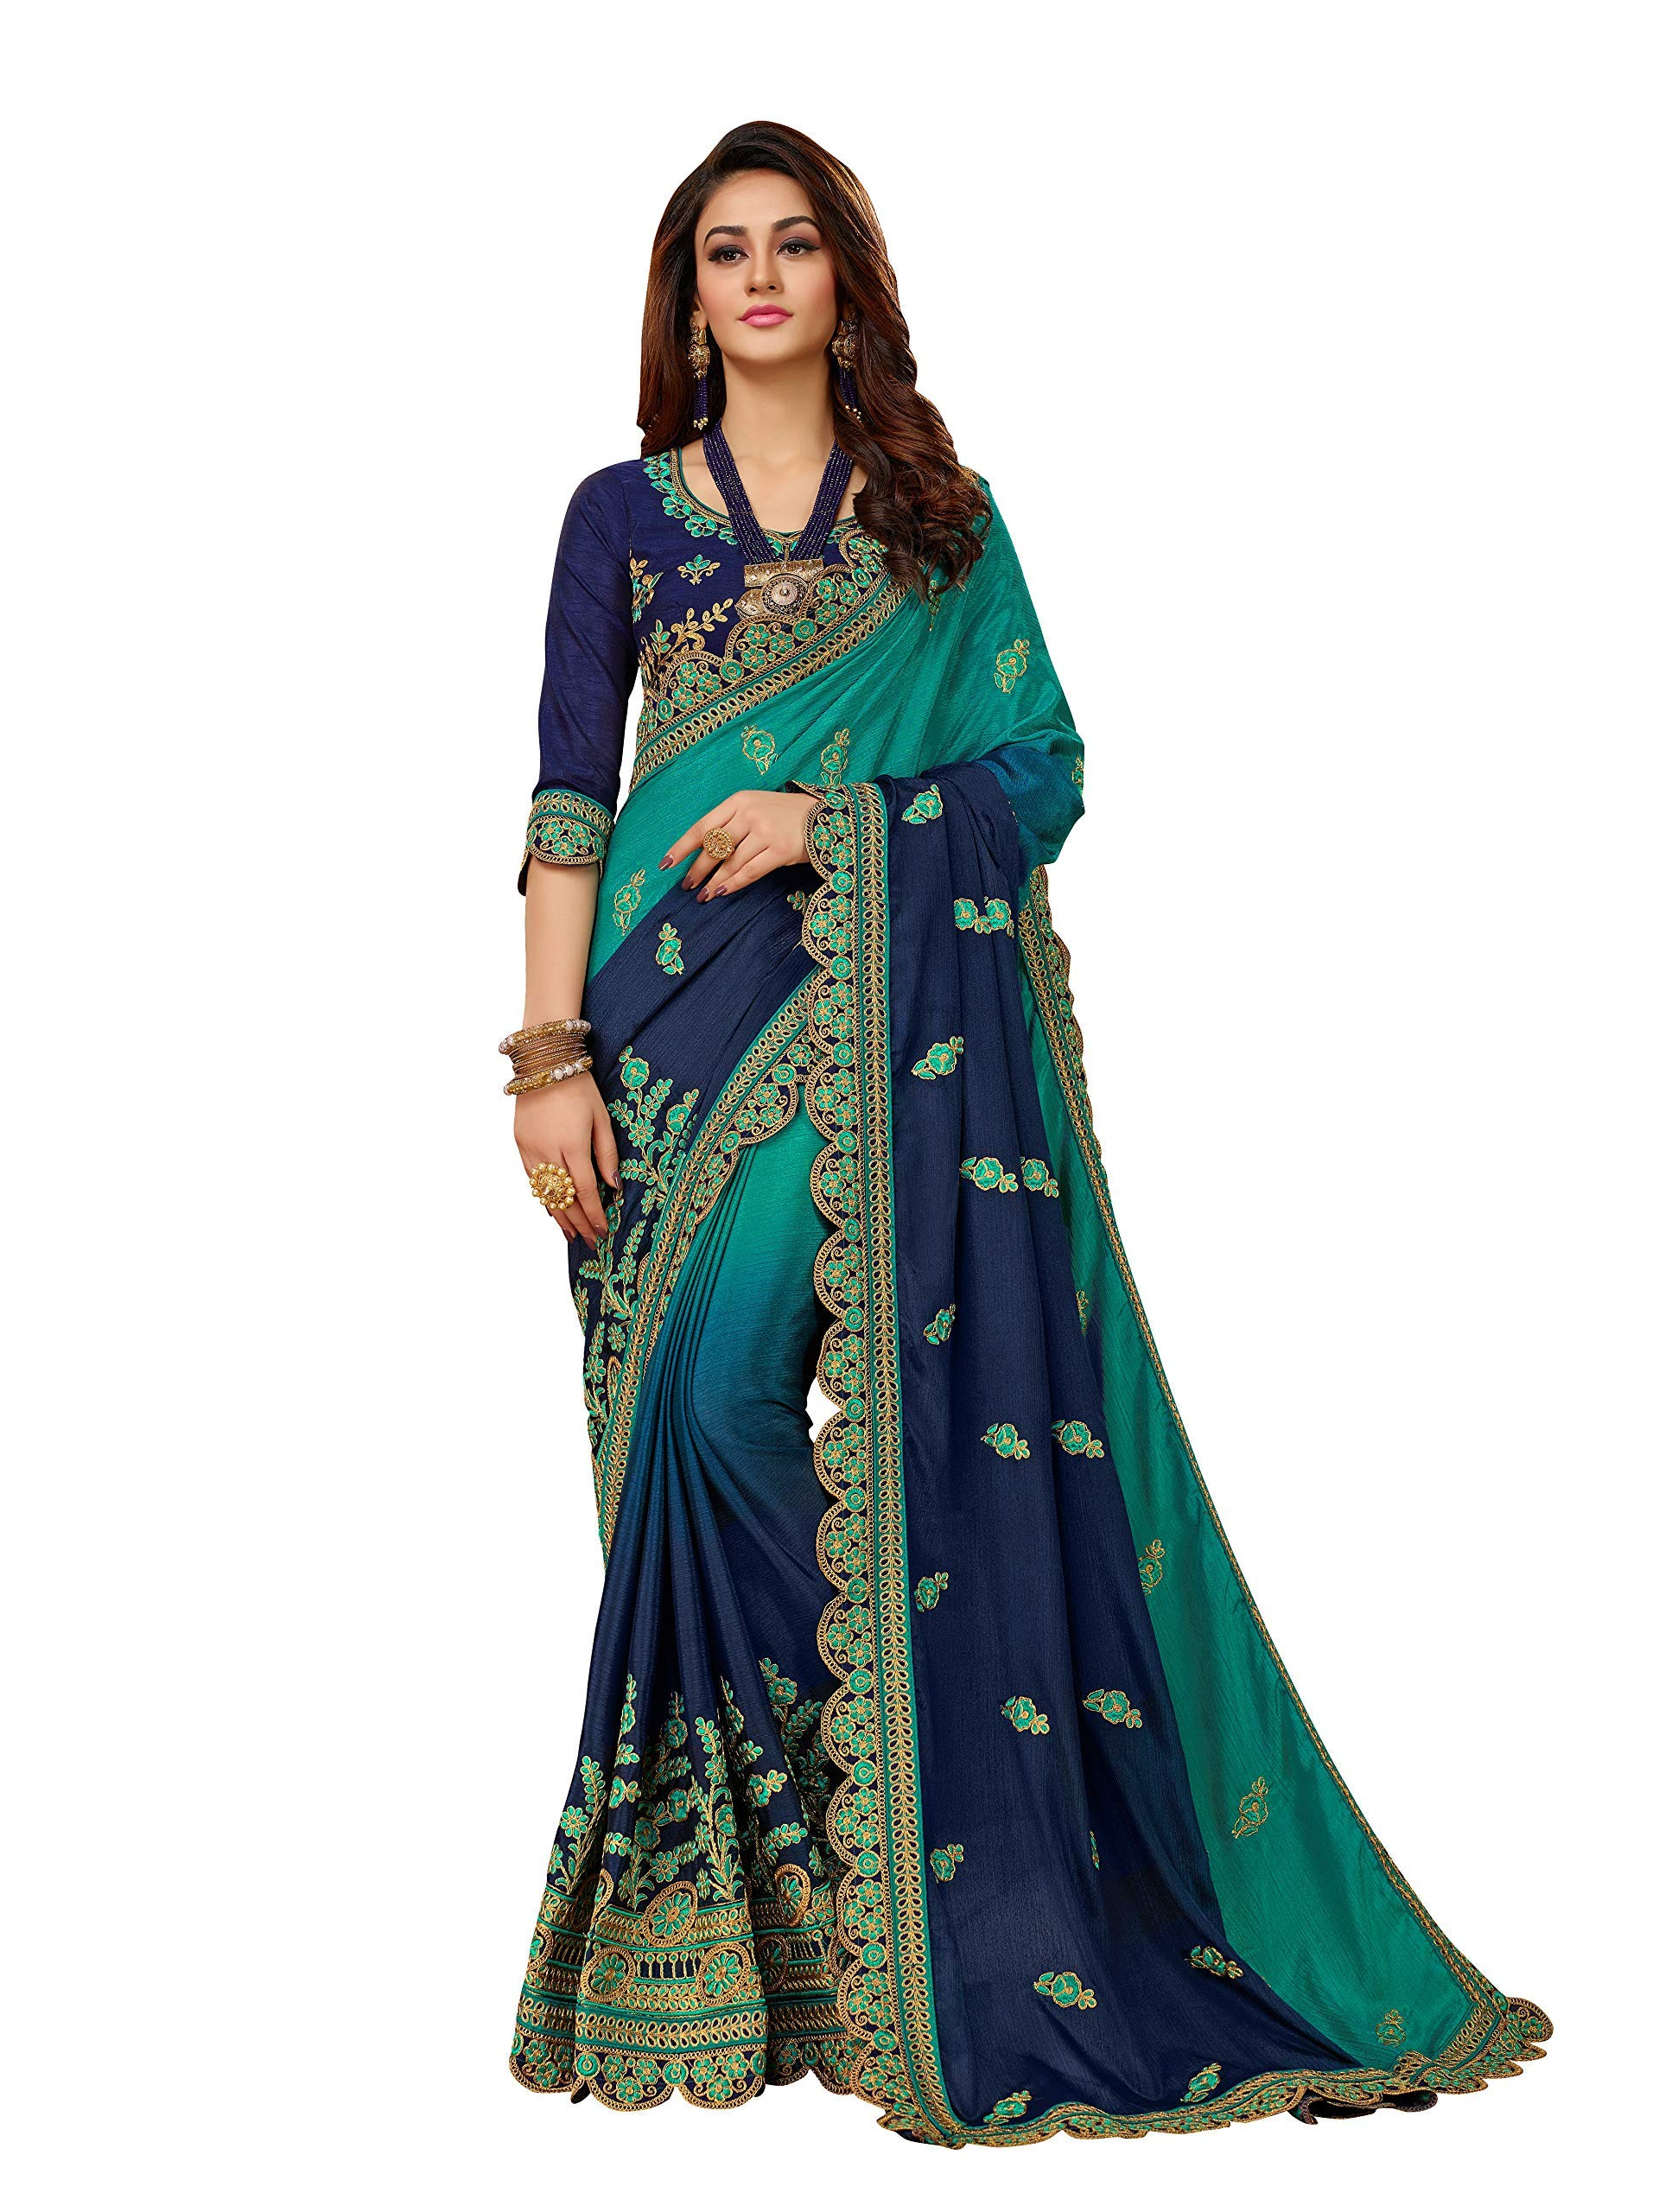 MANOHARI Blue Chiffon Embroidered Saree with Blouse